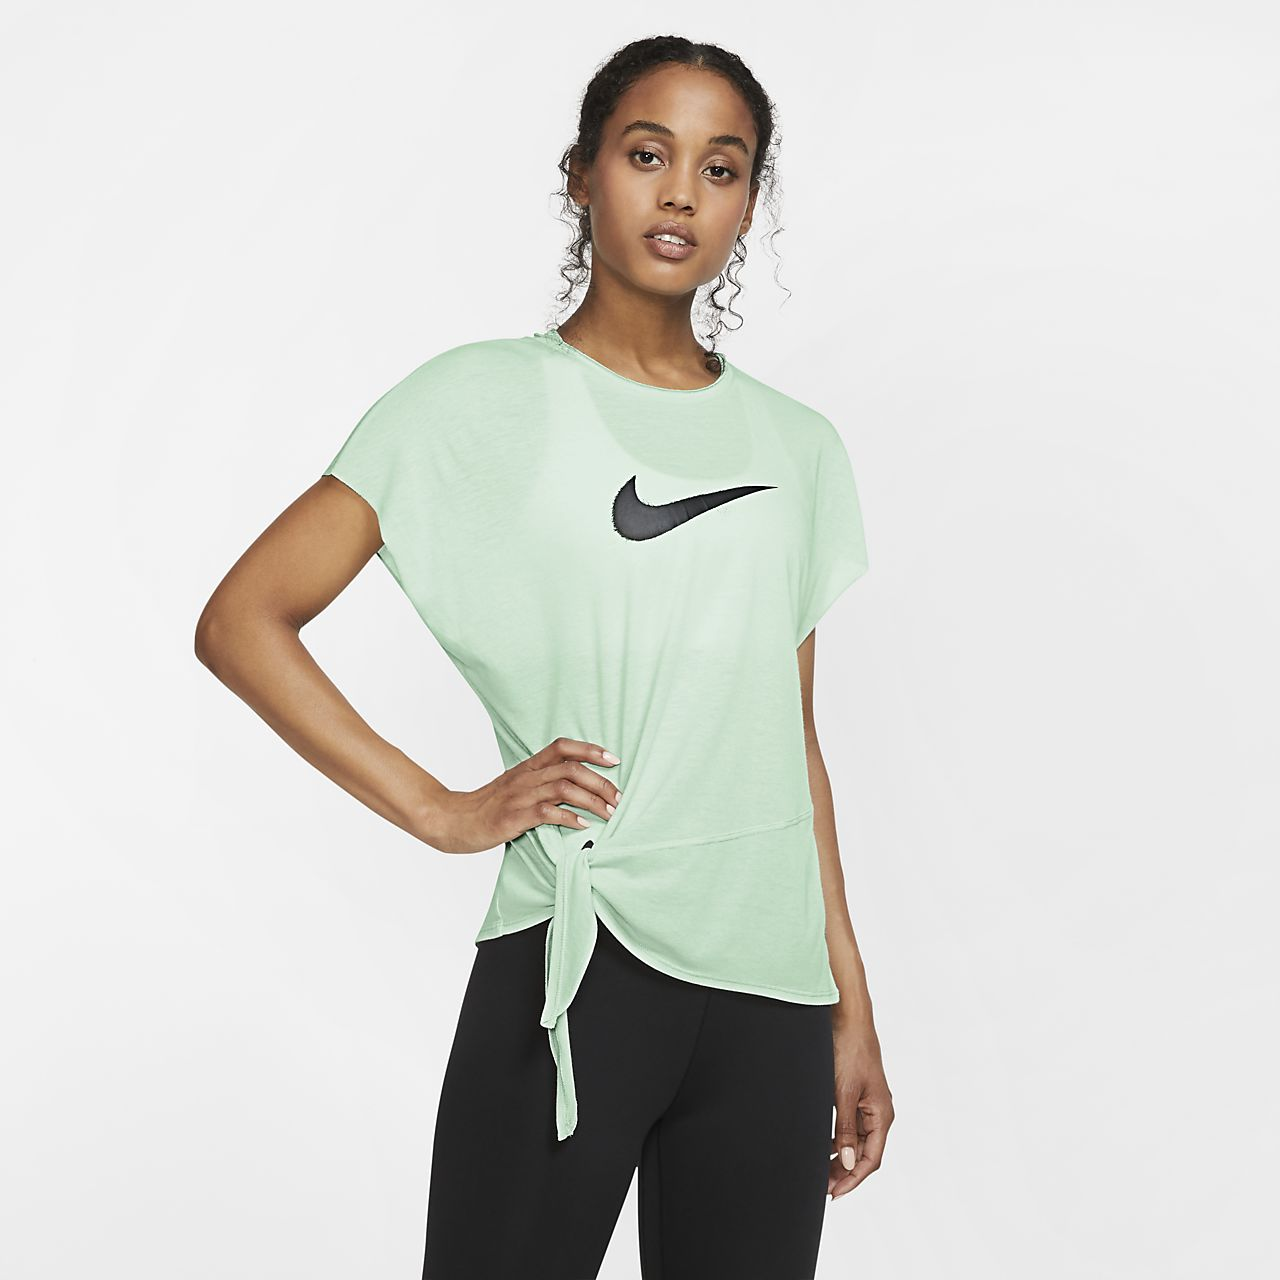 Nike Dri-FIT Women's Short-Sleeve Training Top